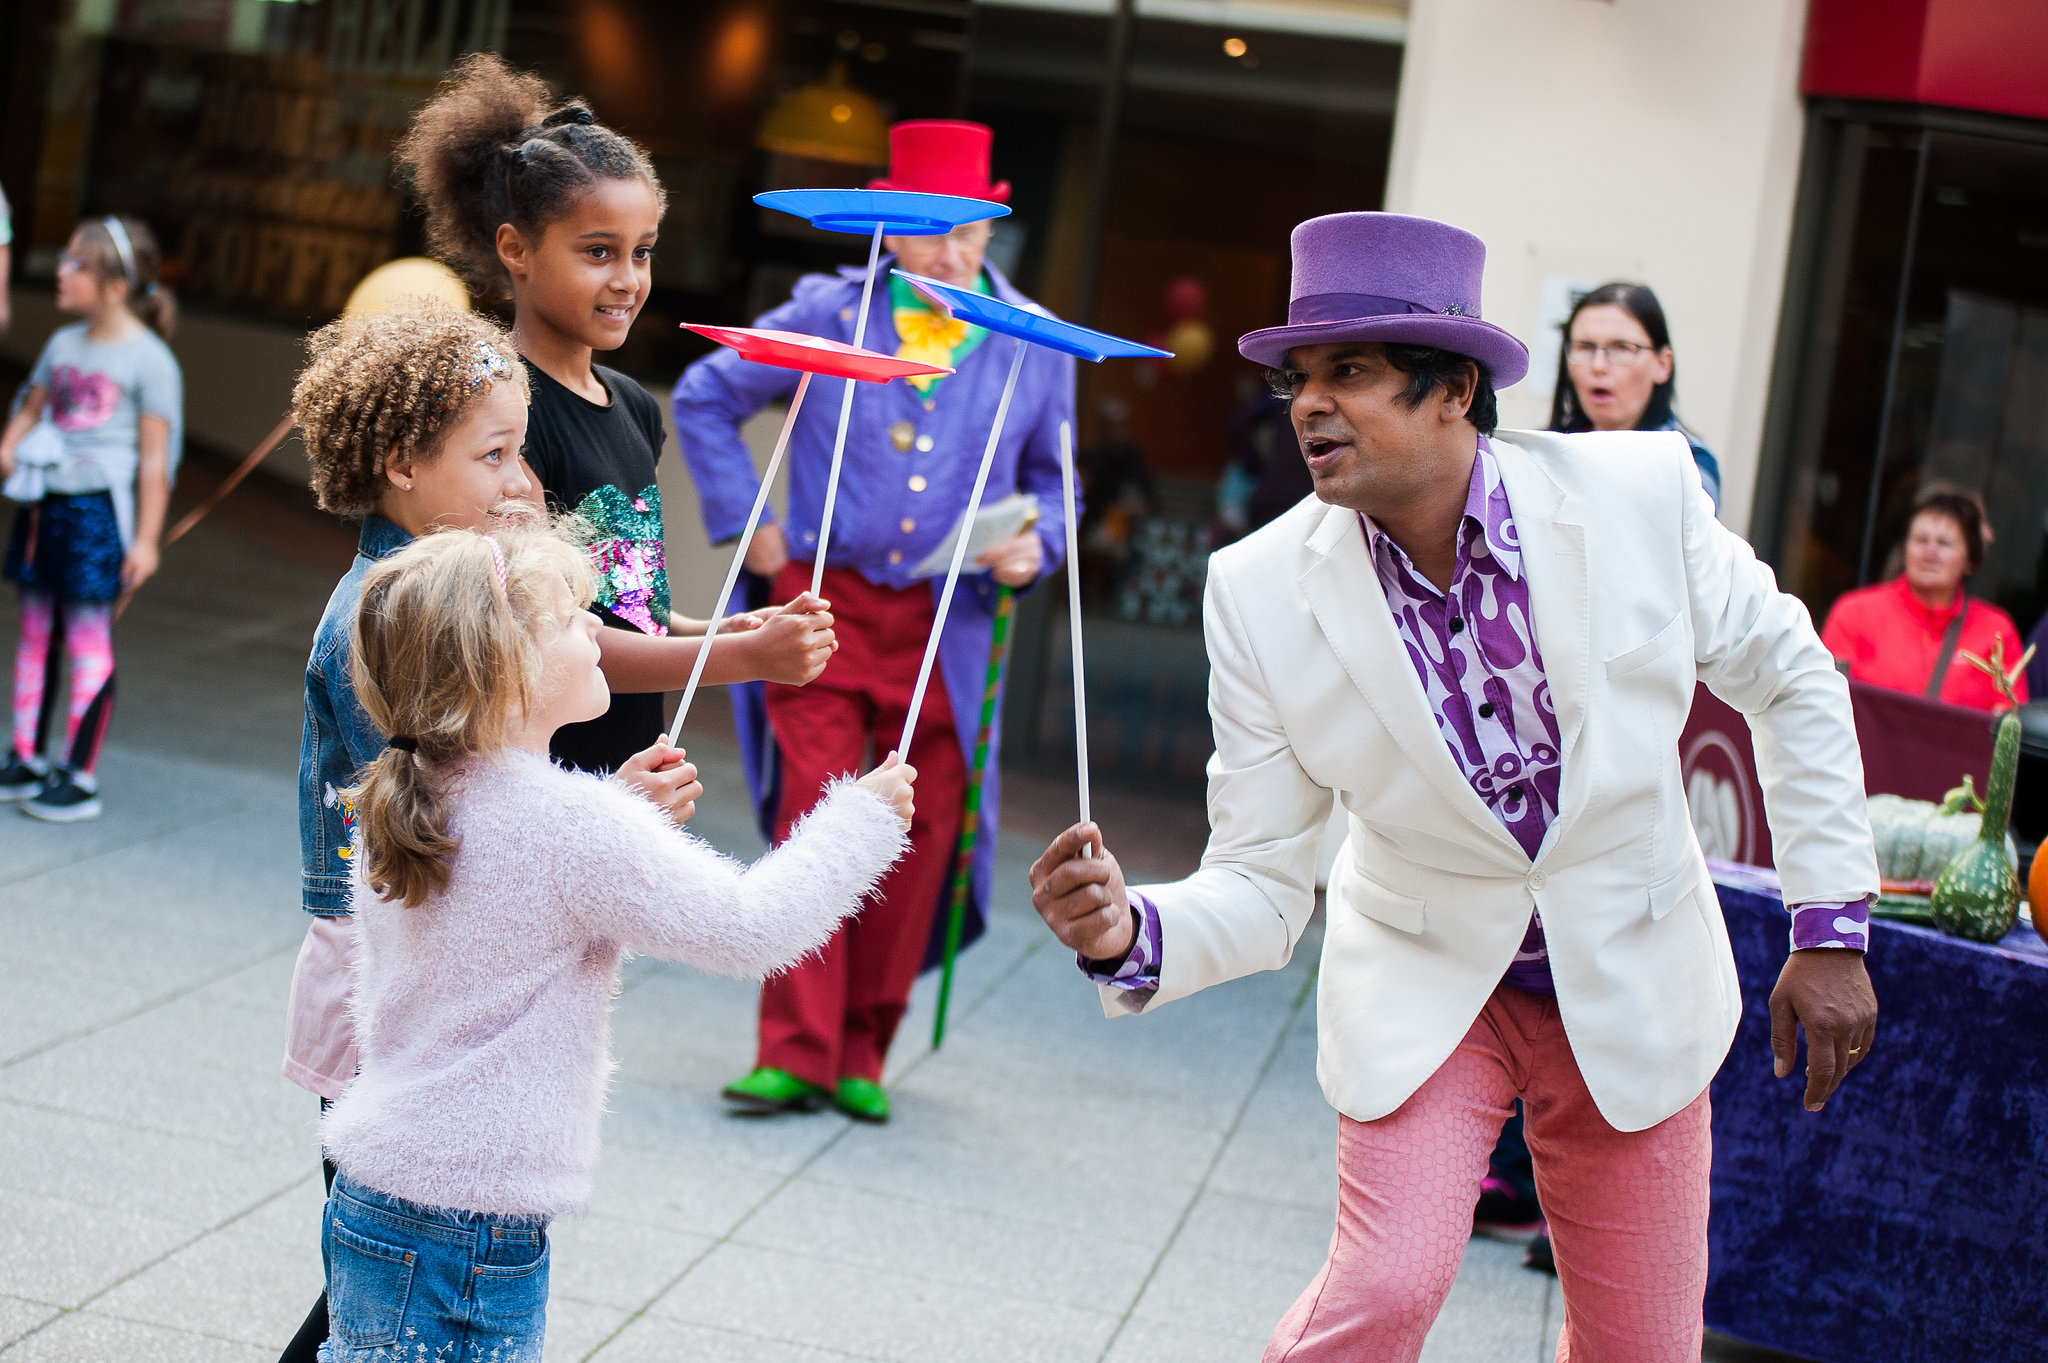 Male entertainer spinning plates with children